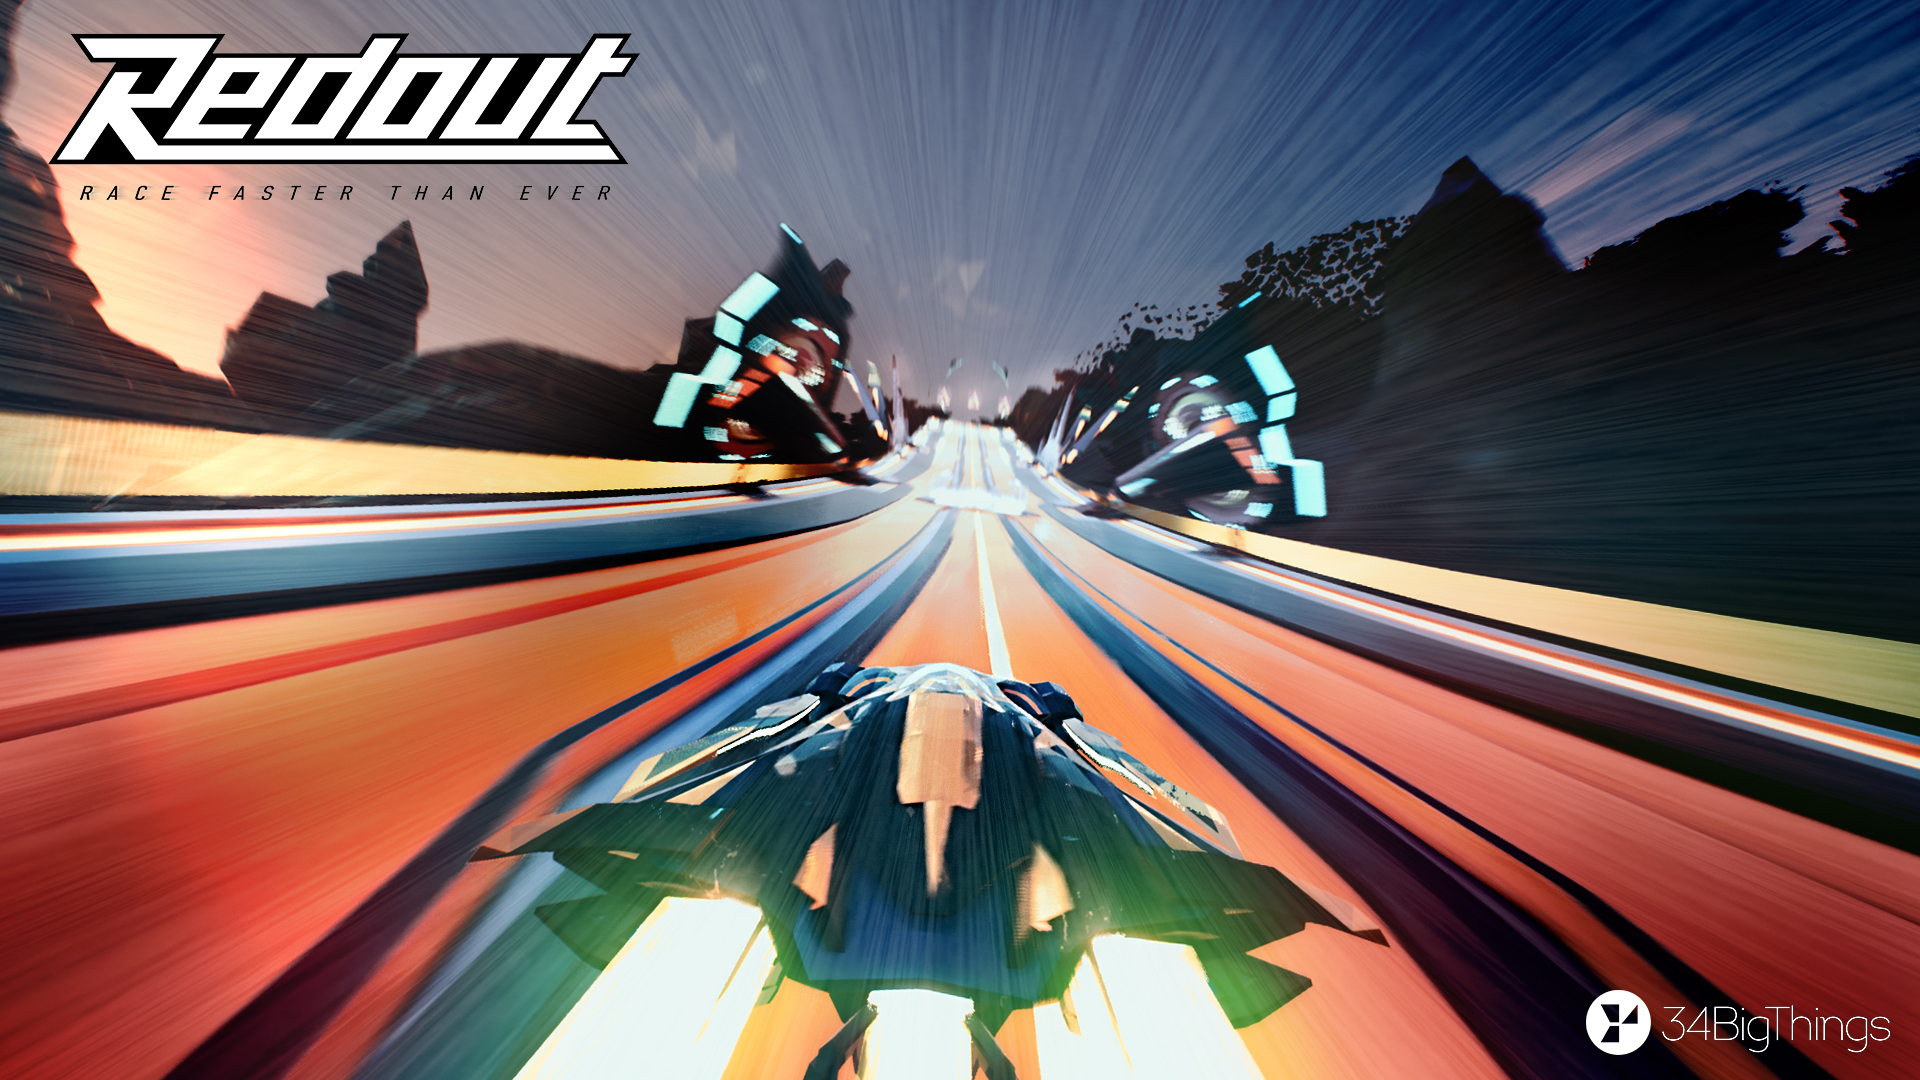 Redout - Sep 1